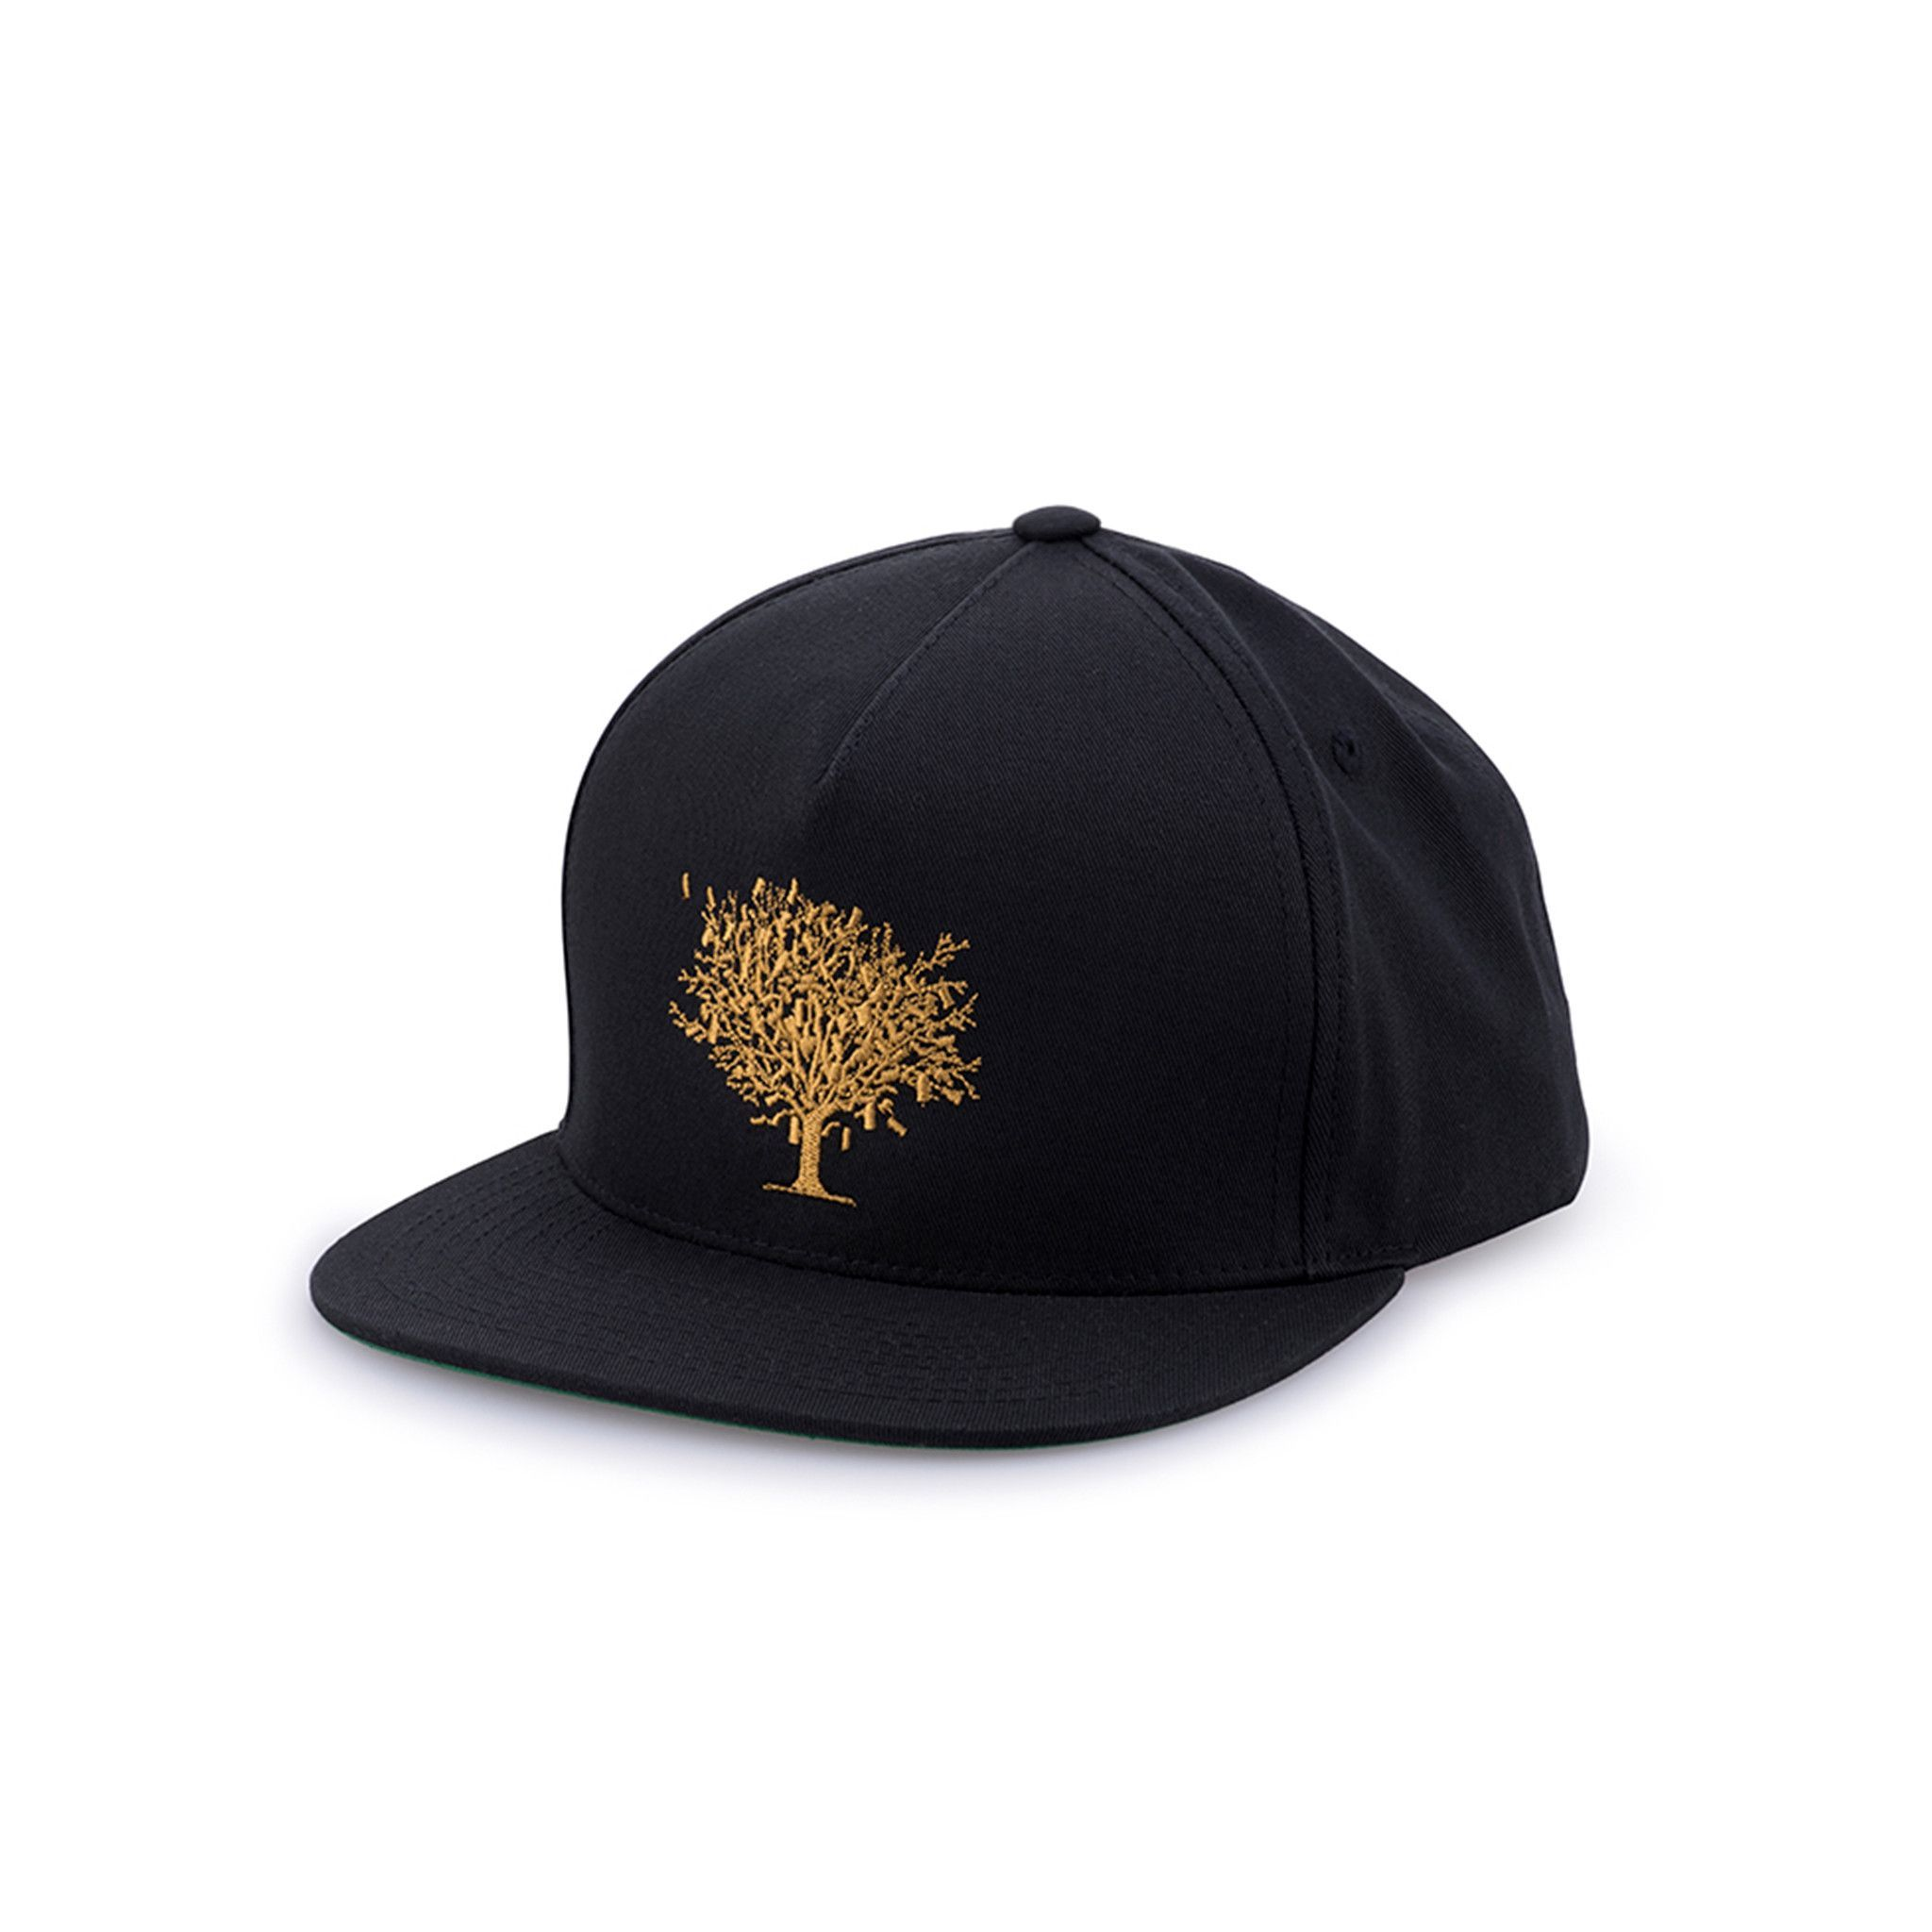 89ba1581 Black classic 5-panel cotton twill snapback. Money tree logo embroidered in  gold on the front. - Made in USA